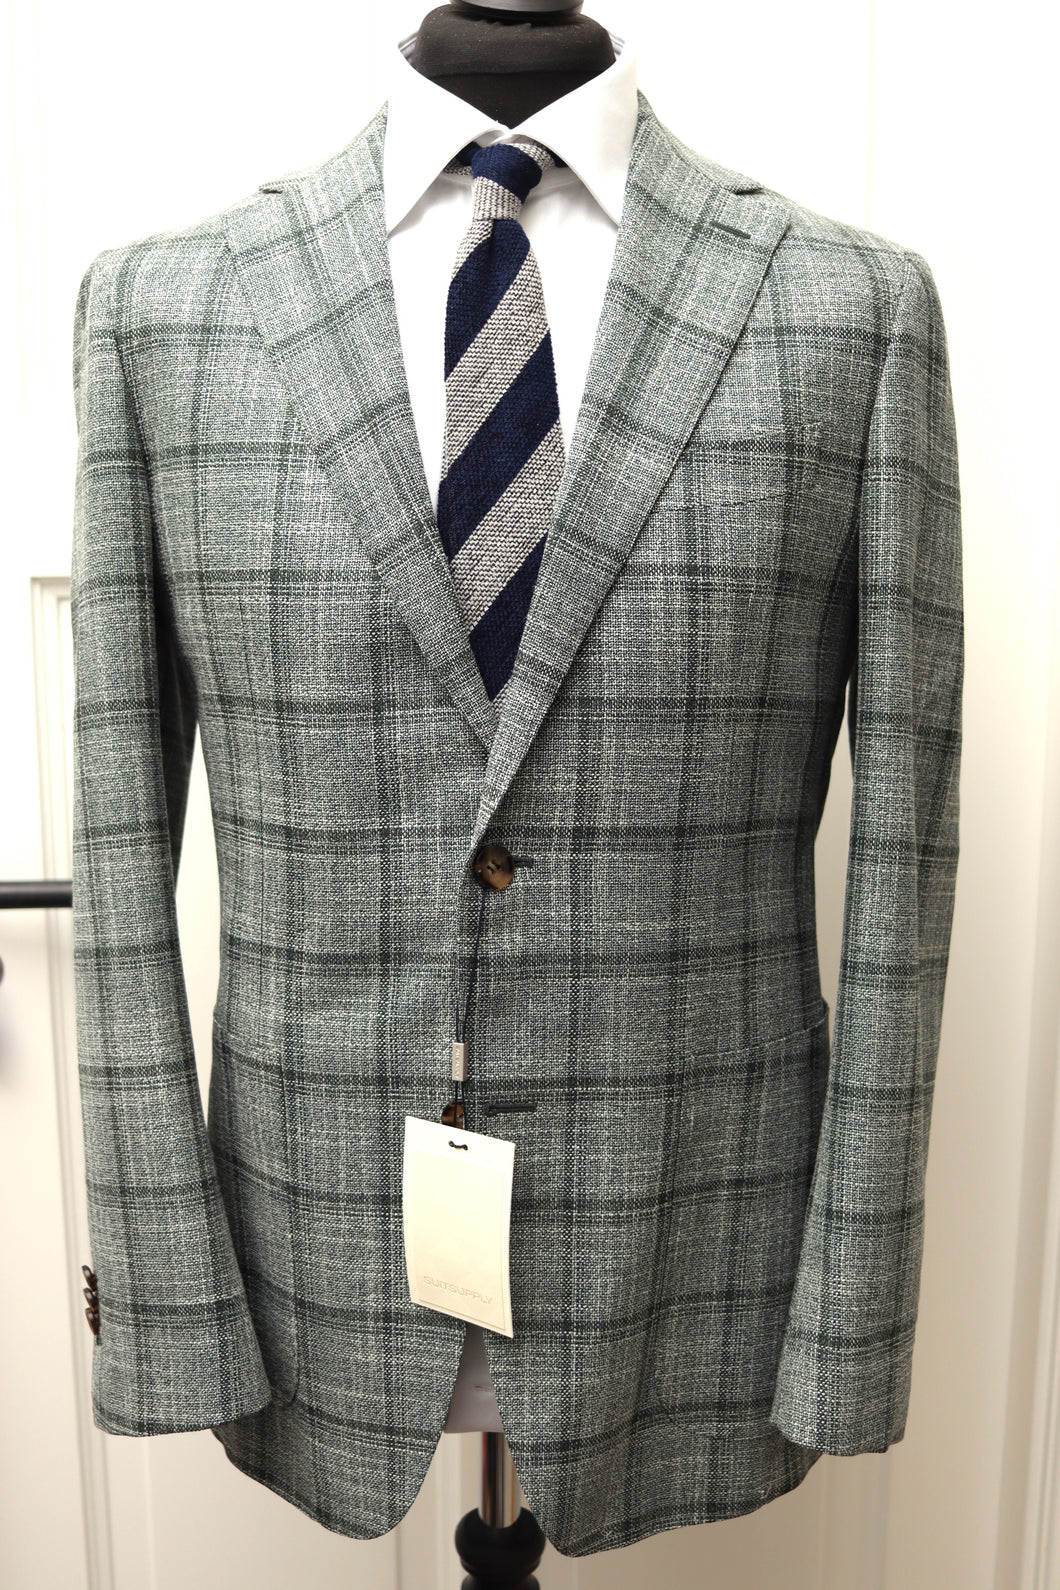 NWT Suitsupply Havana Green Check Wool and Silk Jacket -Size 40R